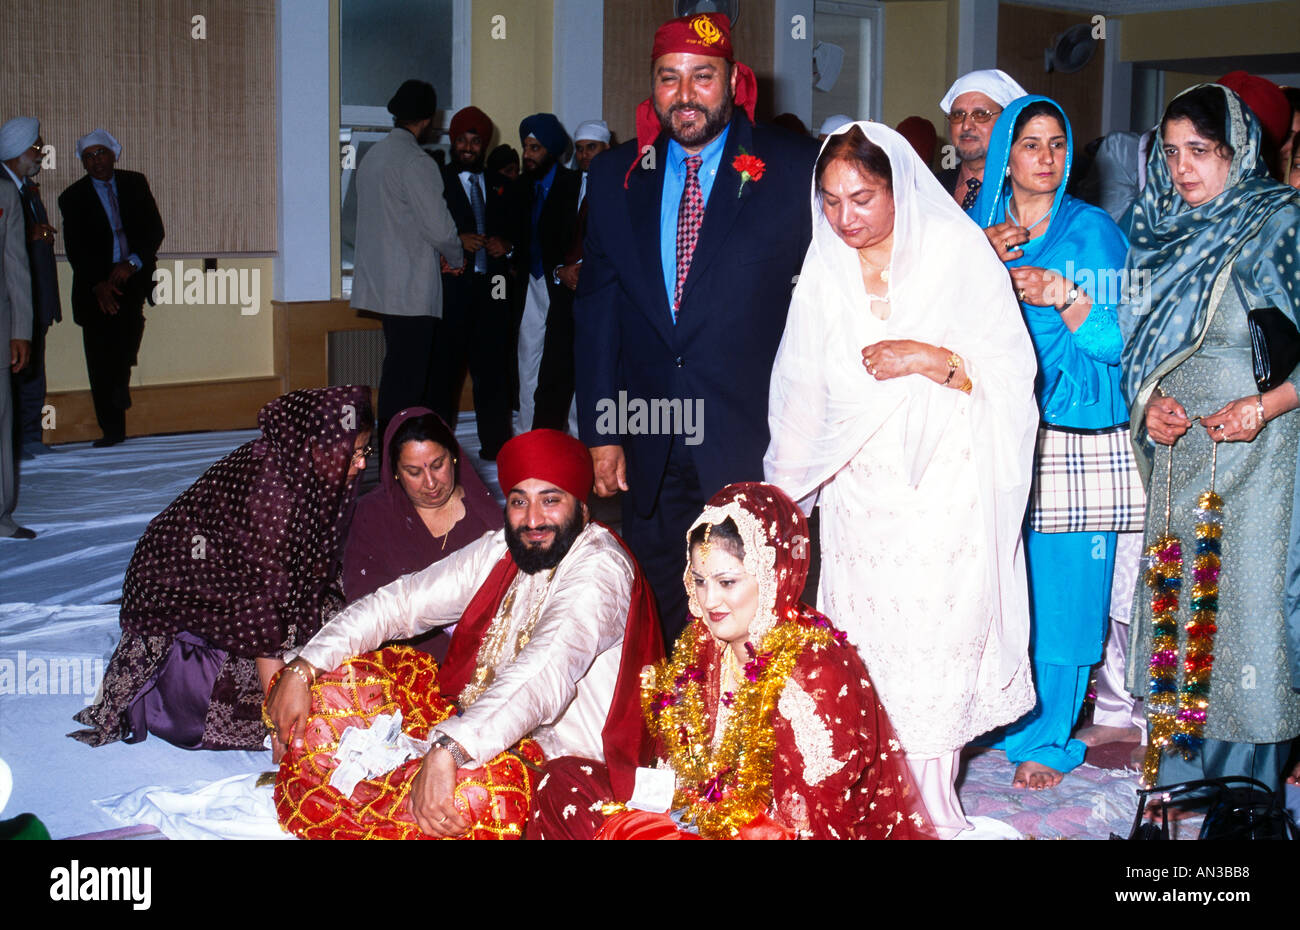 Shepherds Bush London Sikh Gurdwara Wedding Bride Groom Receiving Money Gifts From Guests